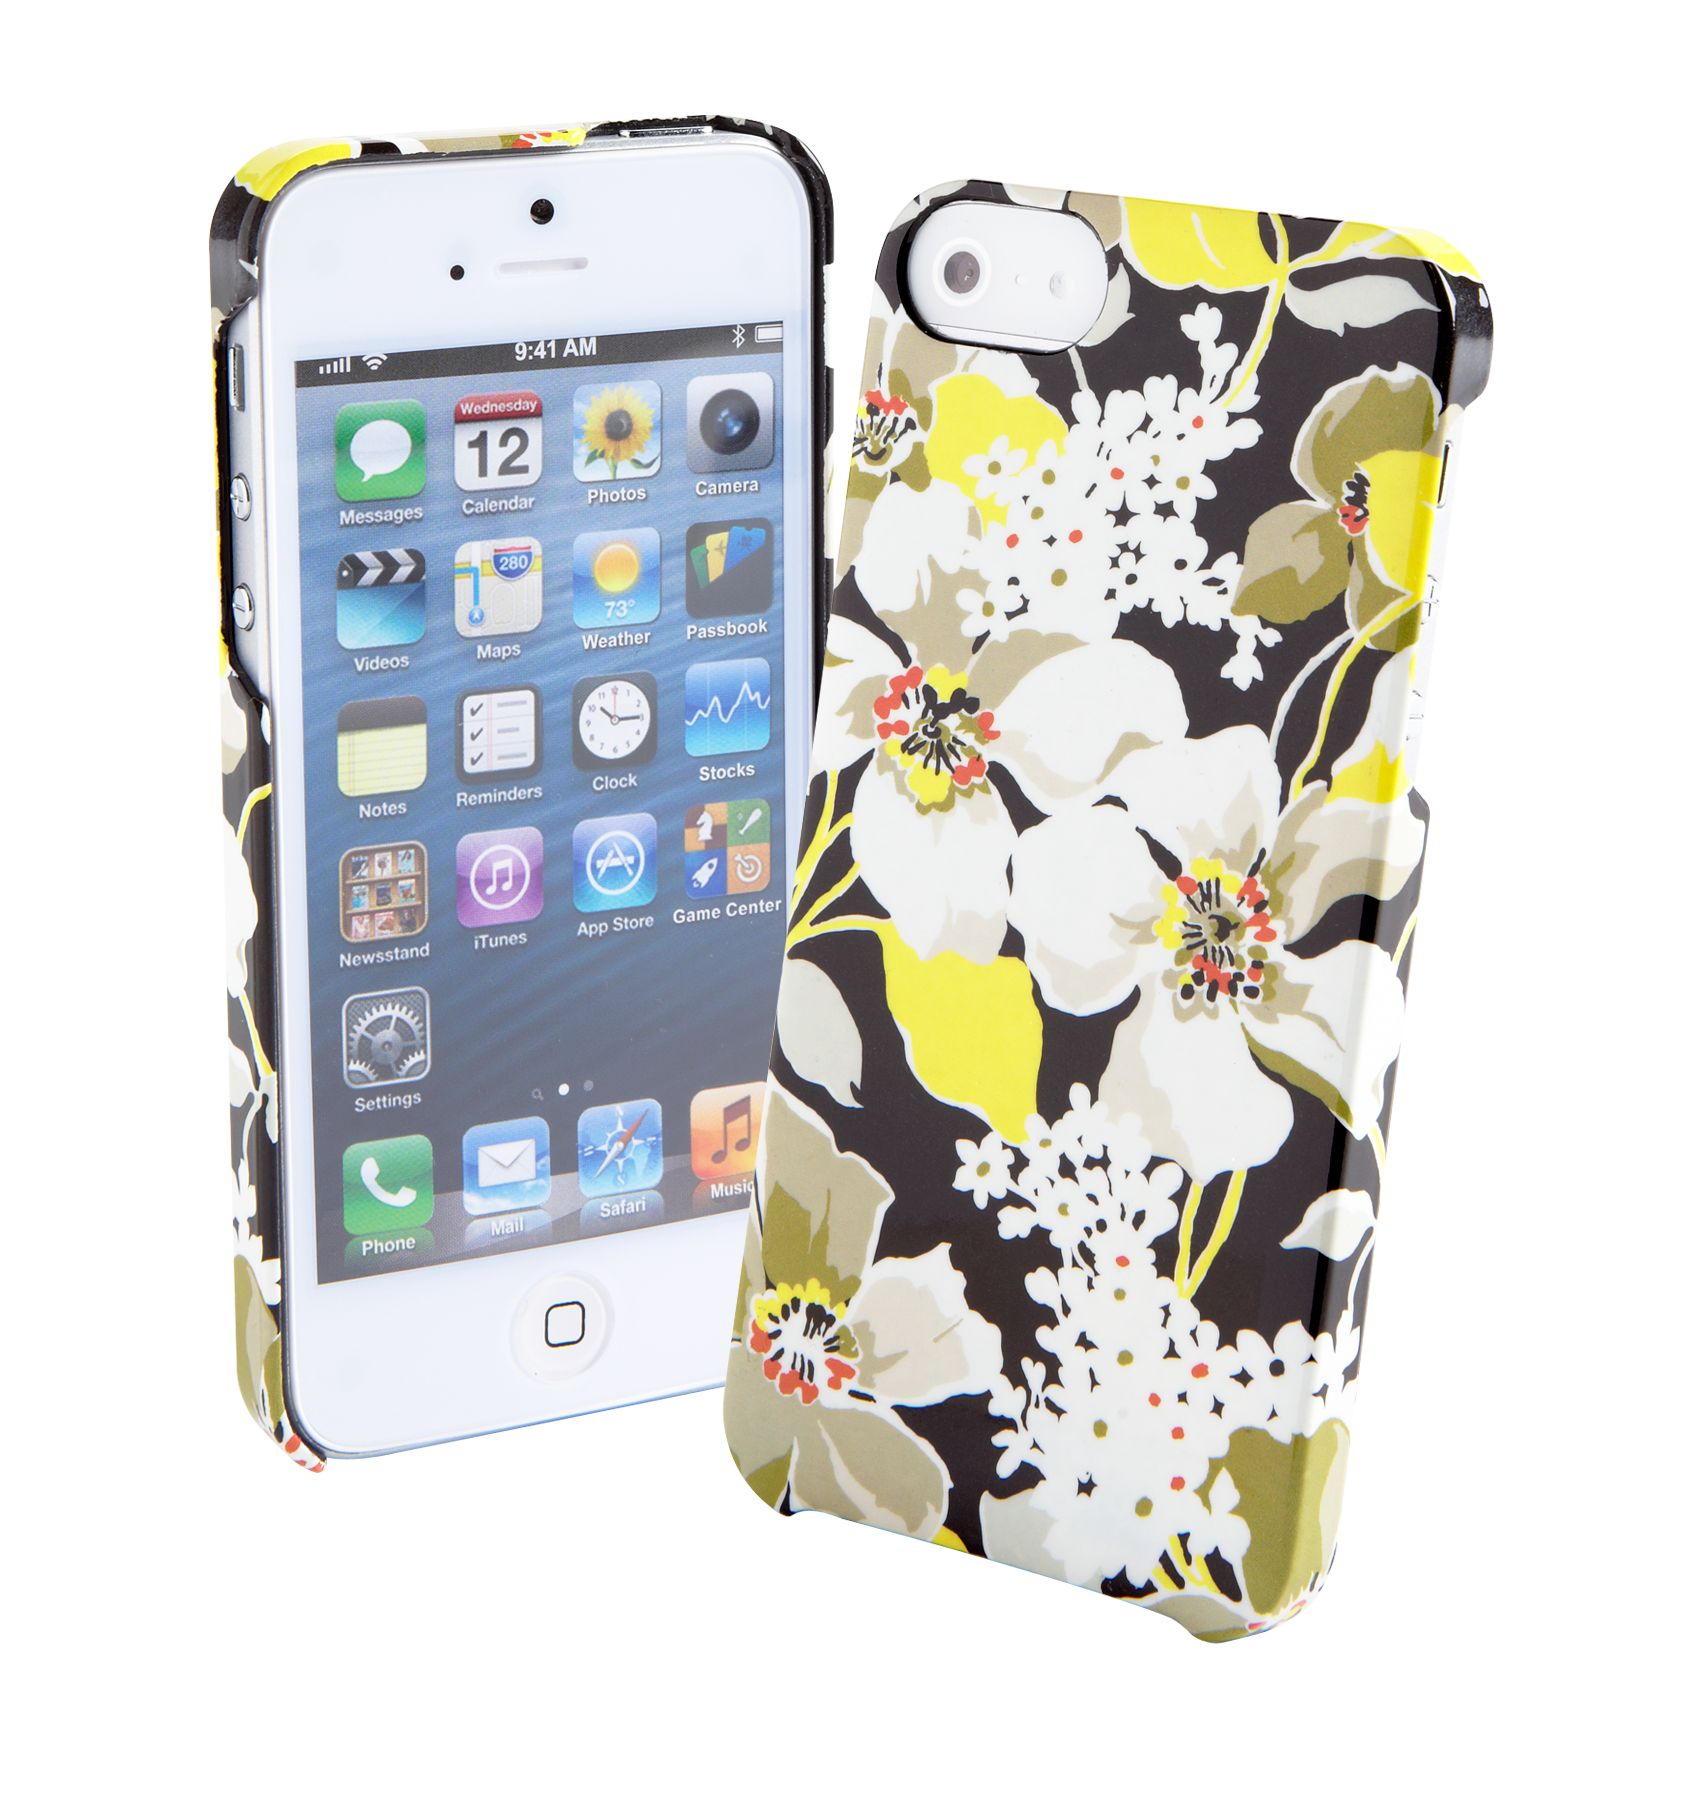 vera bradley iphone 5 case vera bradley snap on phone for iphone 5 ebay 9066